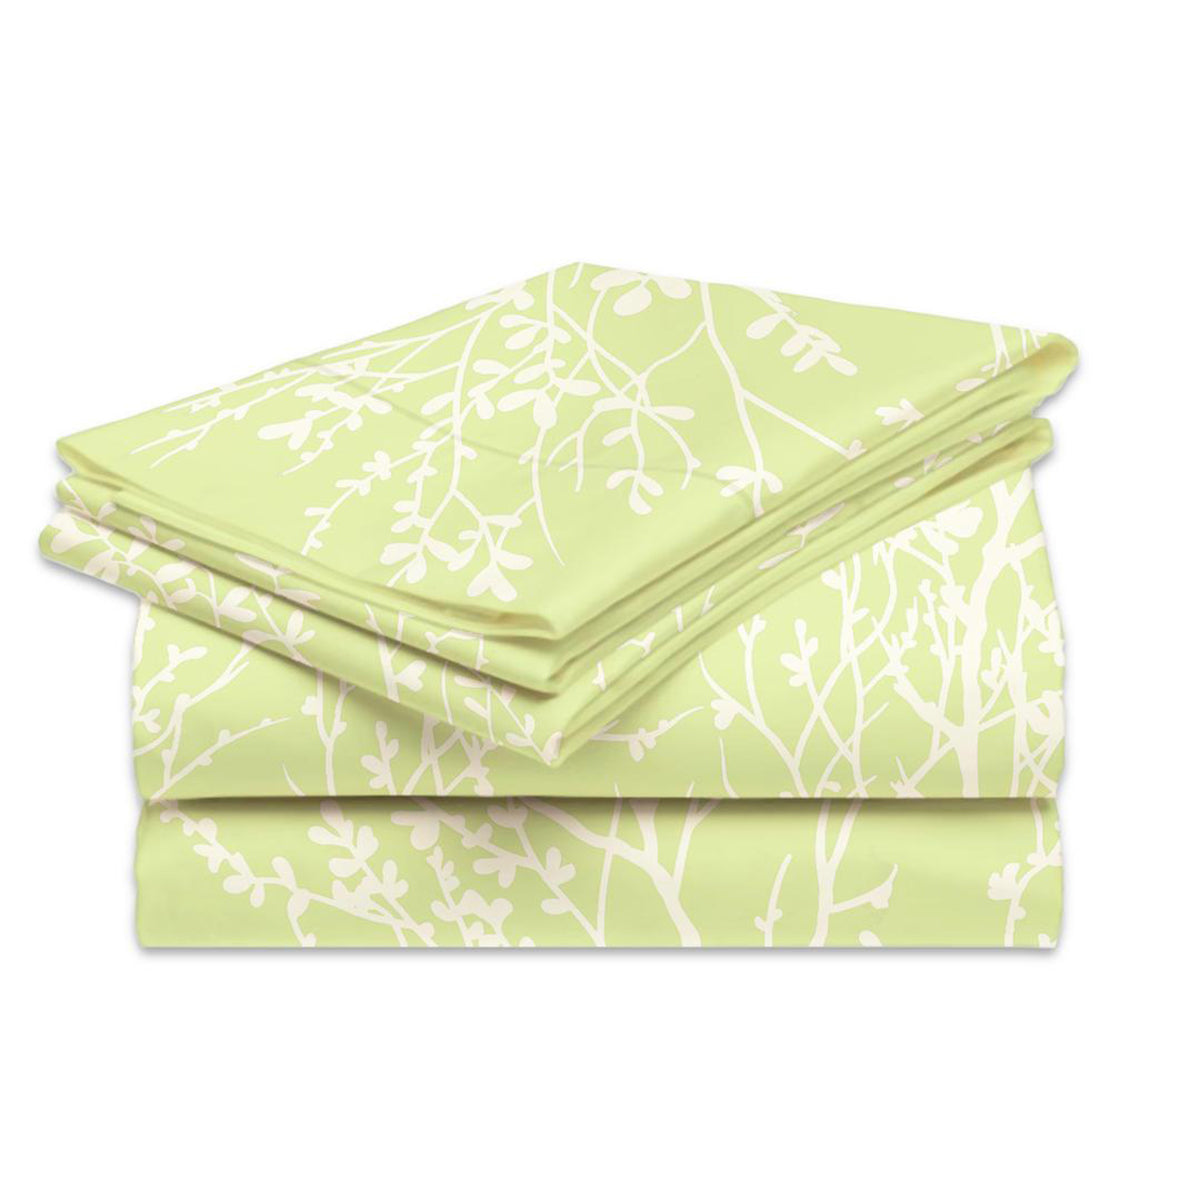 4-Piece Set: Super-Soft 1600 Series Foliage Sheets